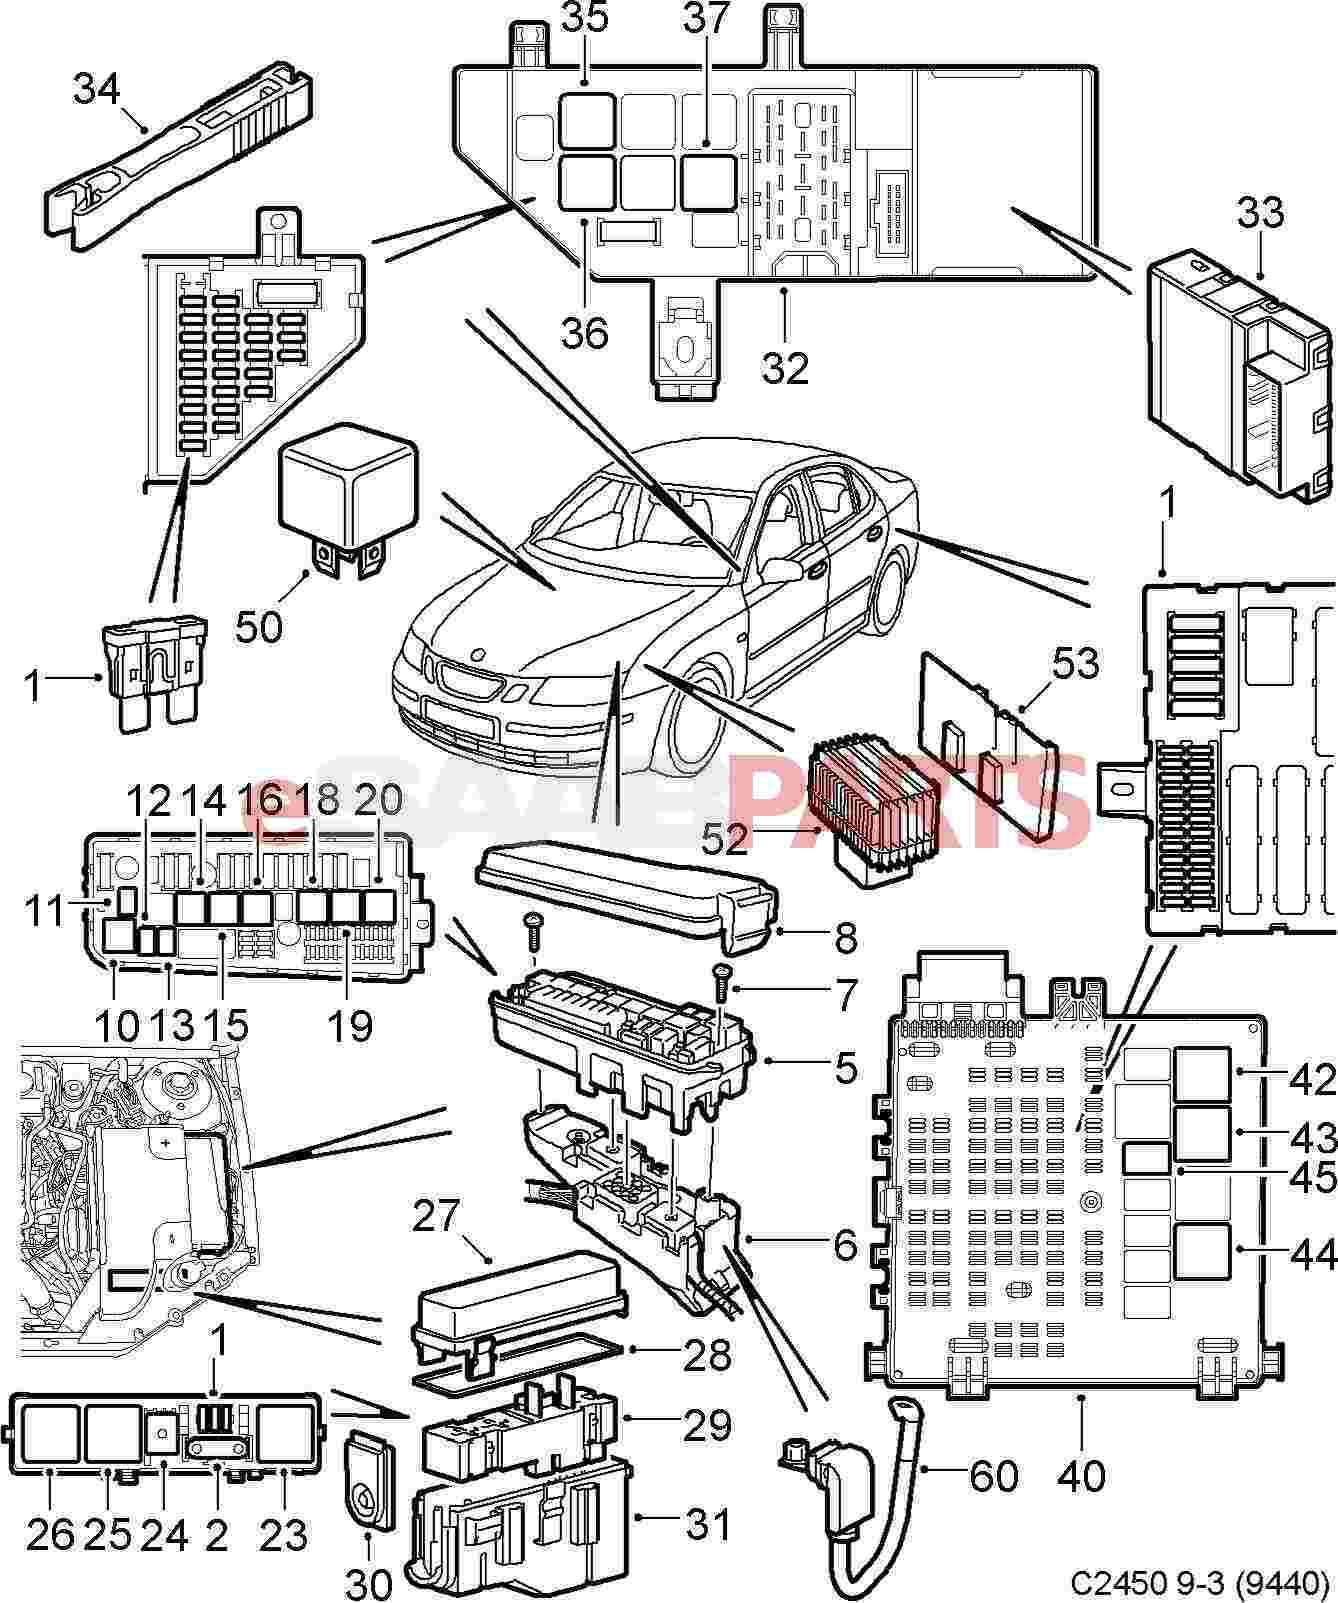 13266316 Saab Relay Genuine Saab Parts From Esaabparts Com